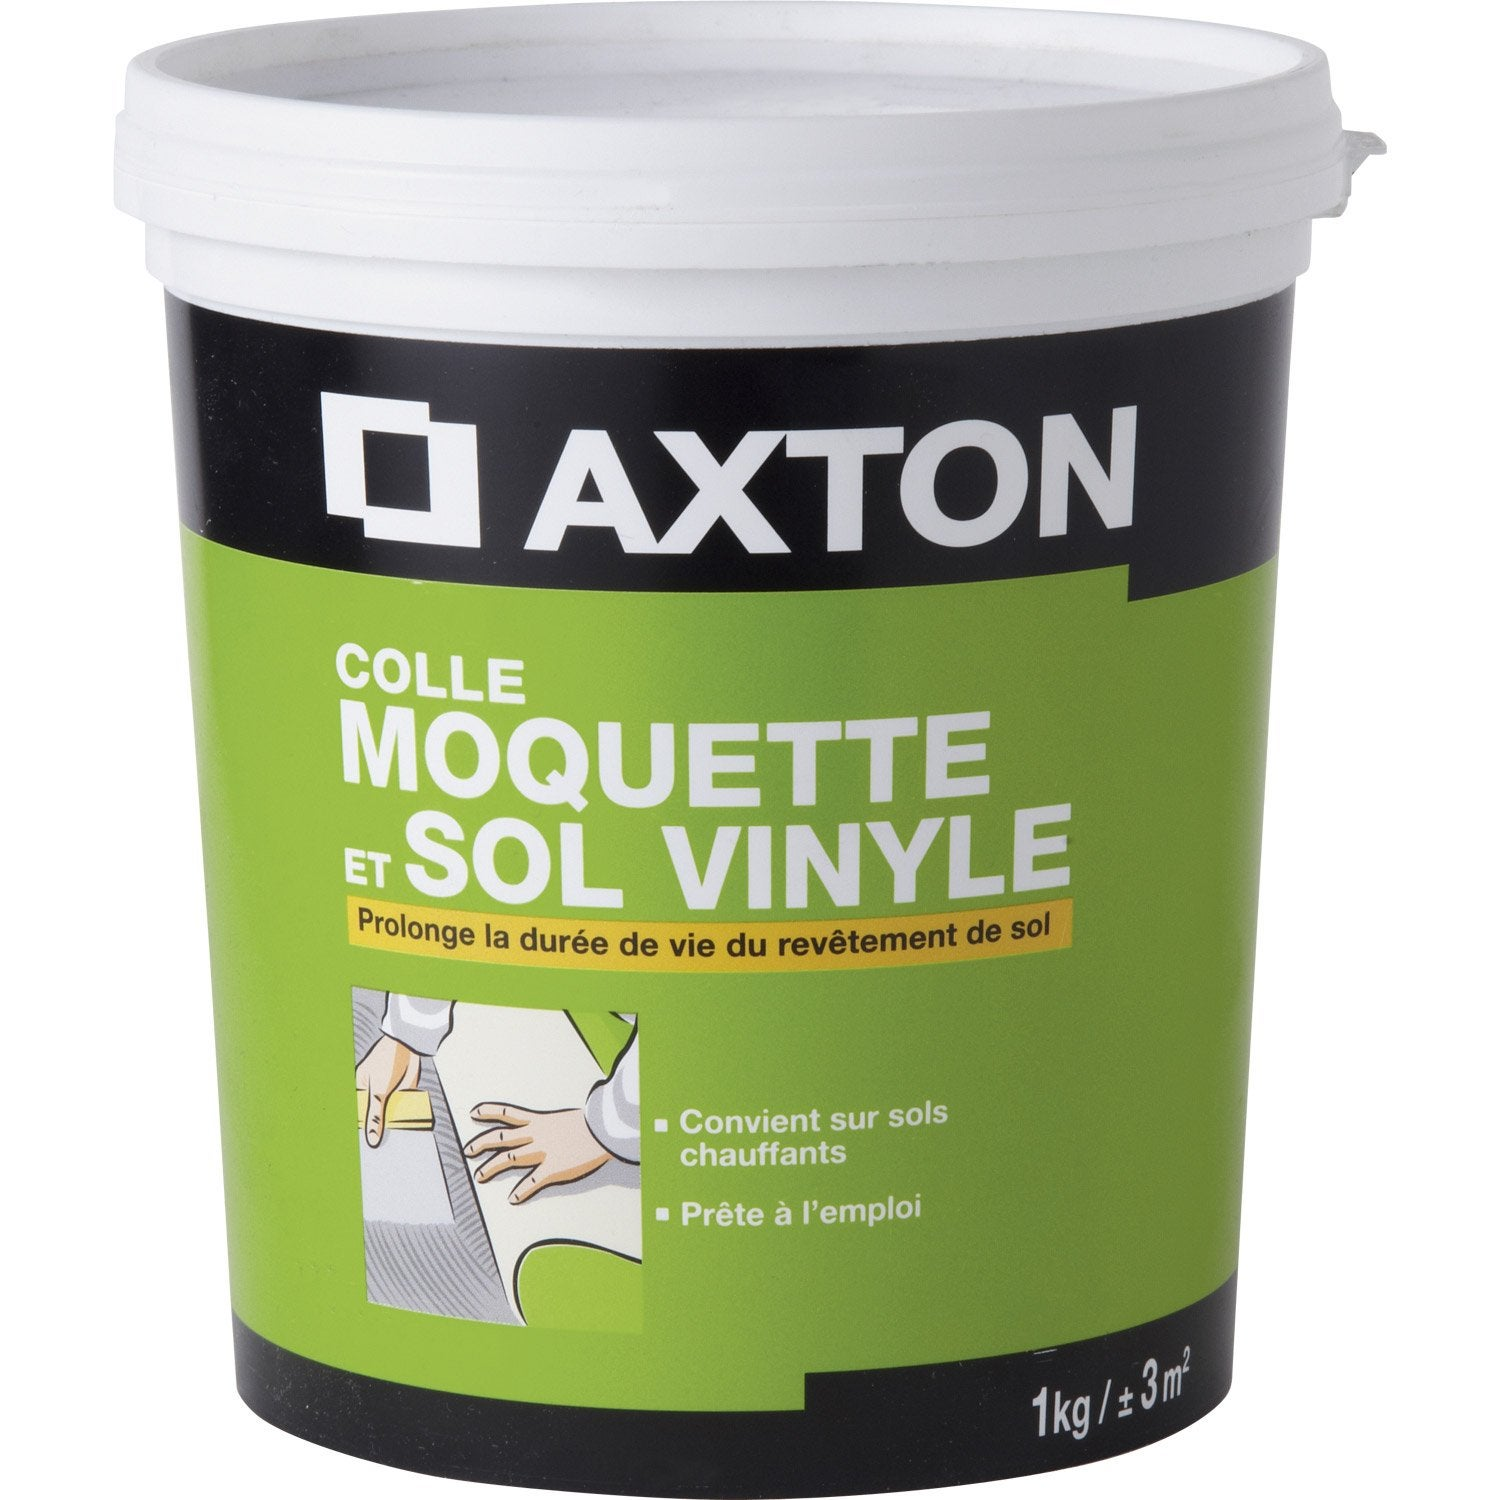 Colle sol souple 1 kg axton leroy merlin for Colle souple pour carrelage